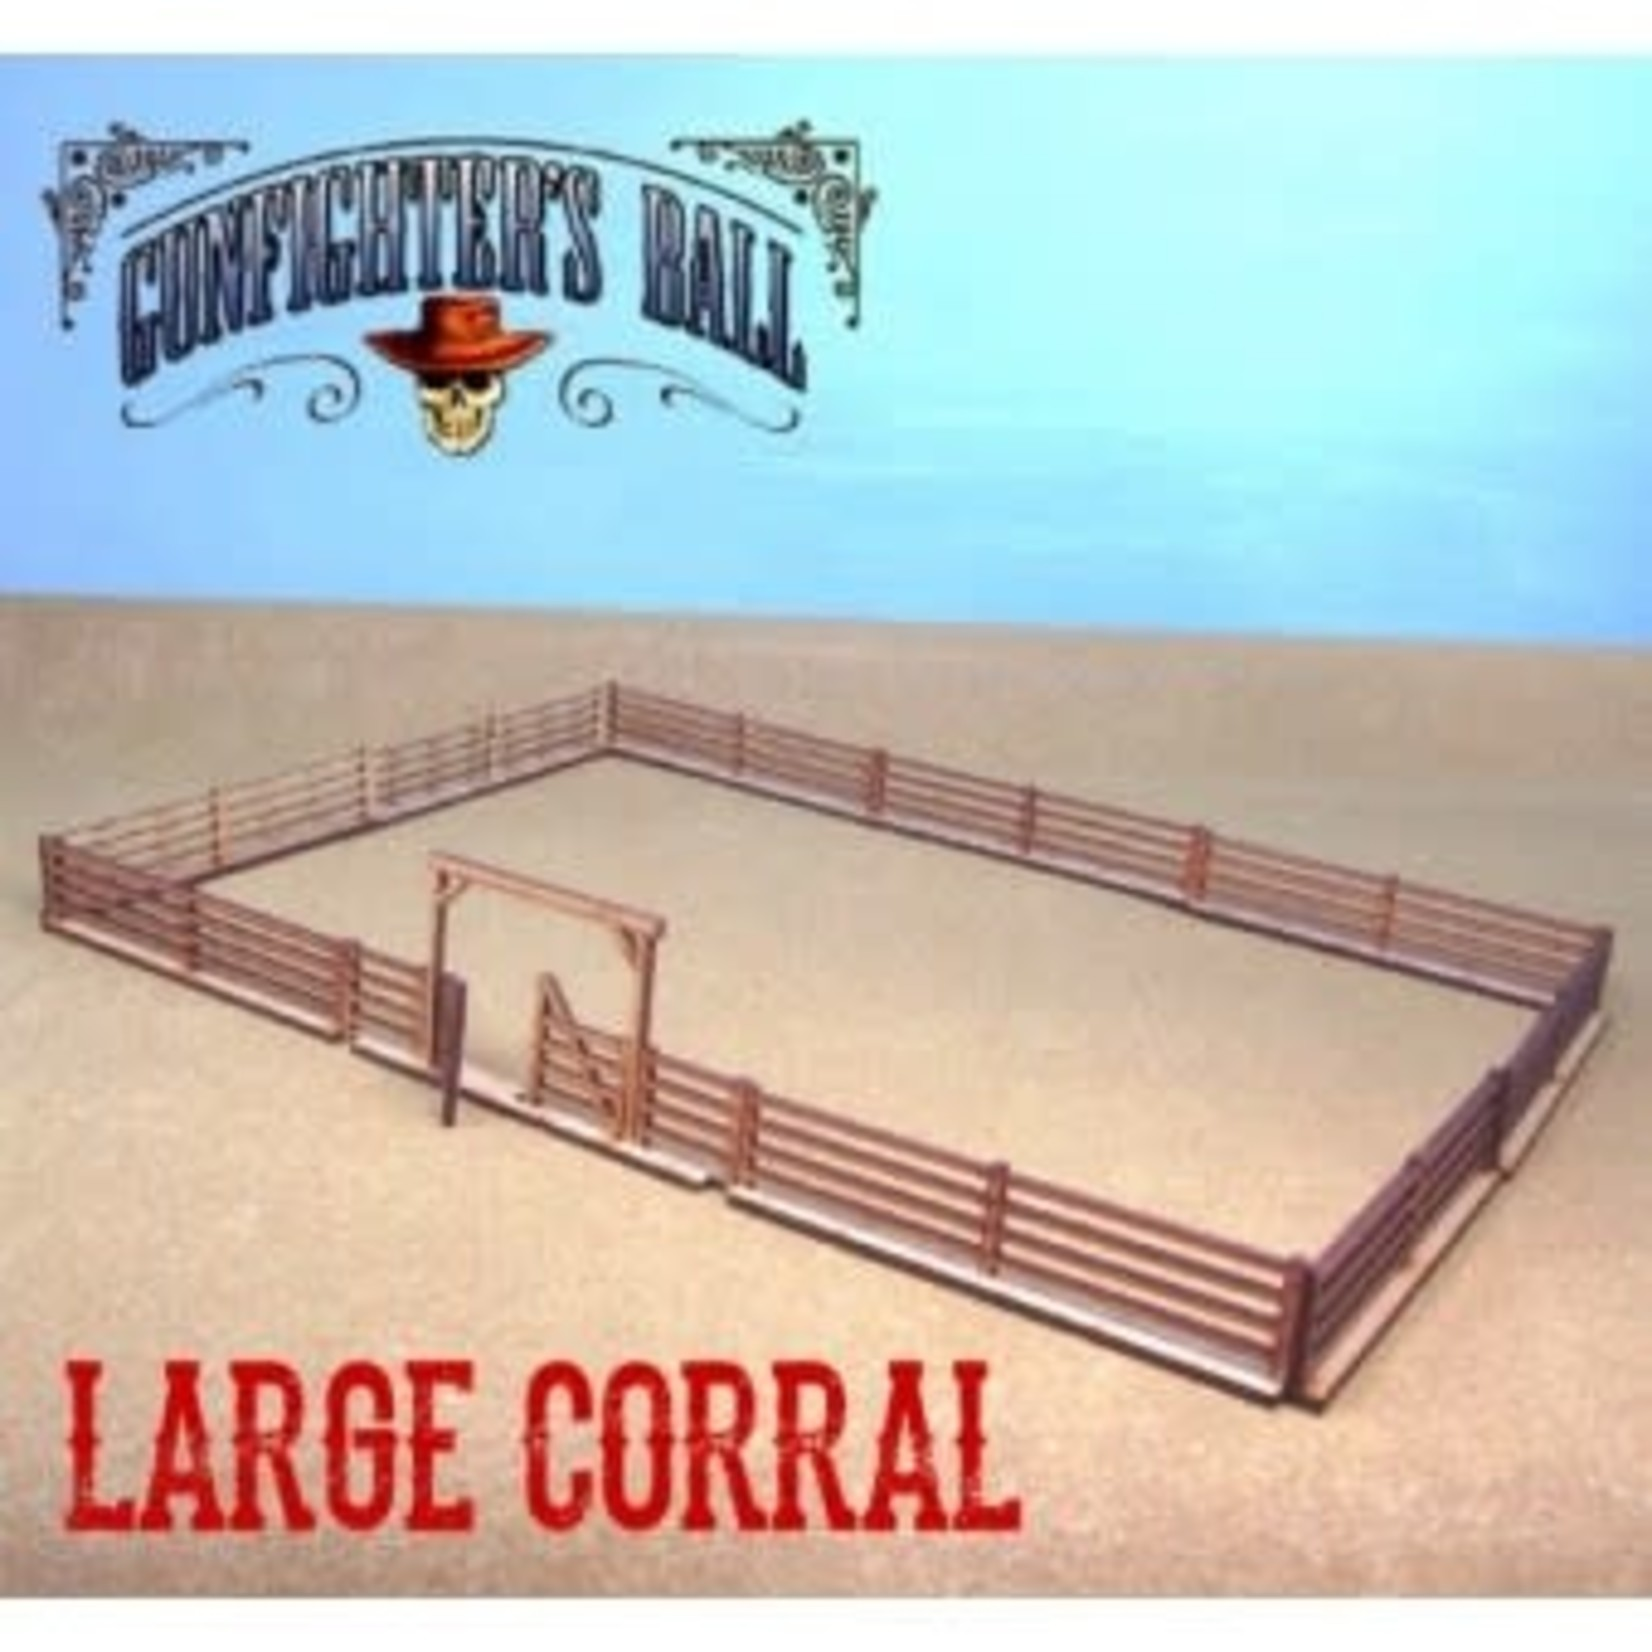 Large Corral